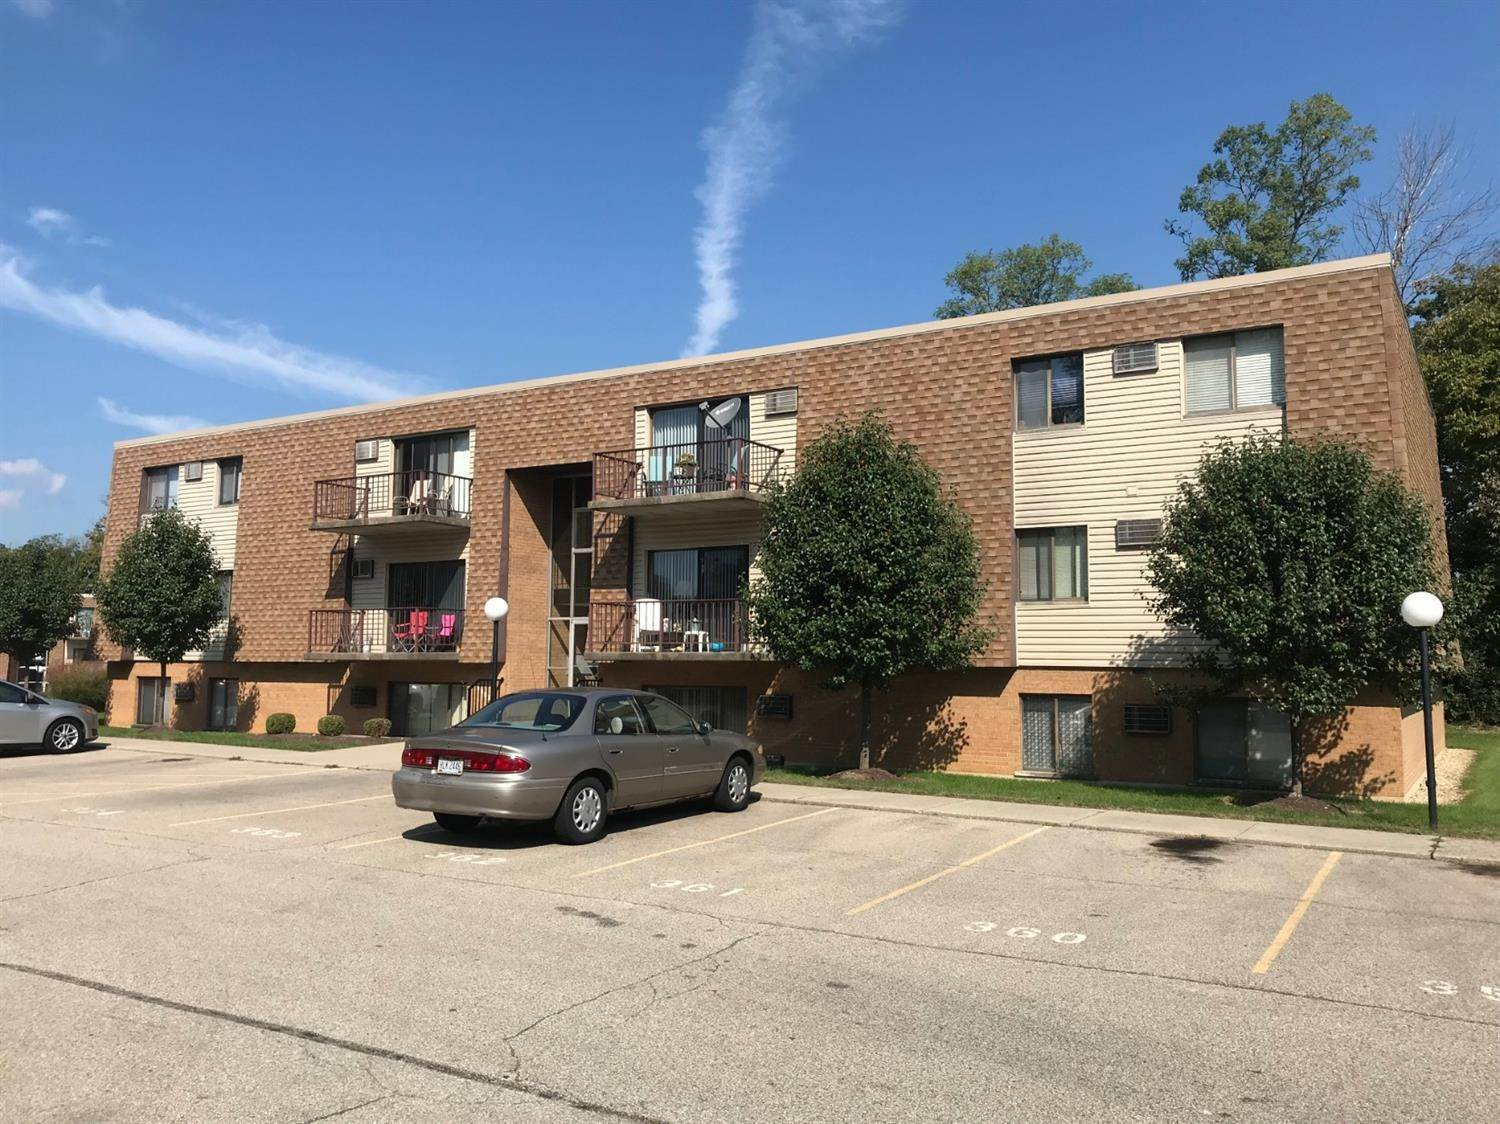 Condominiums at 6601 Hearne Road Green Township, Ohio 45248 United States